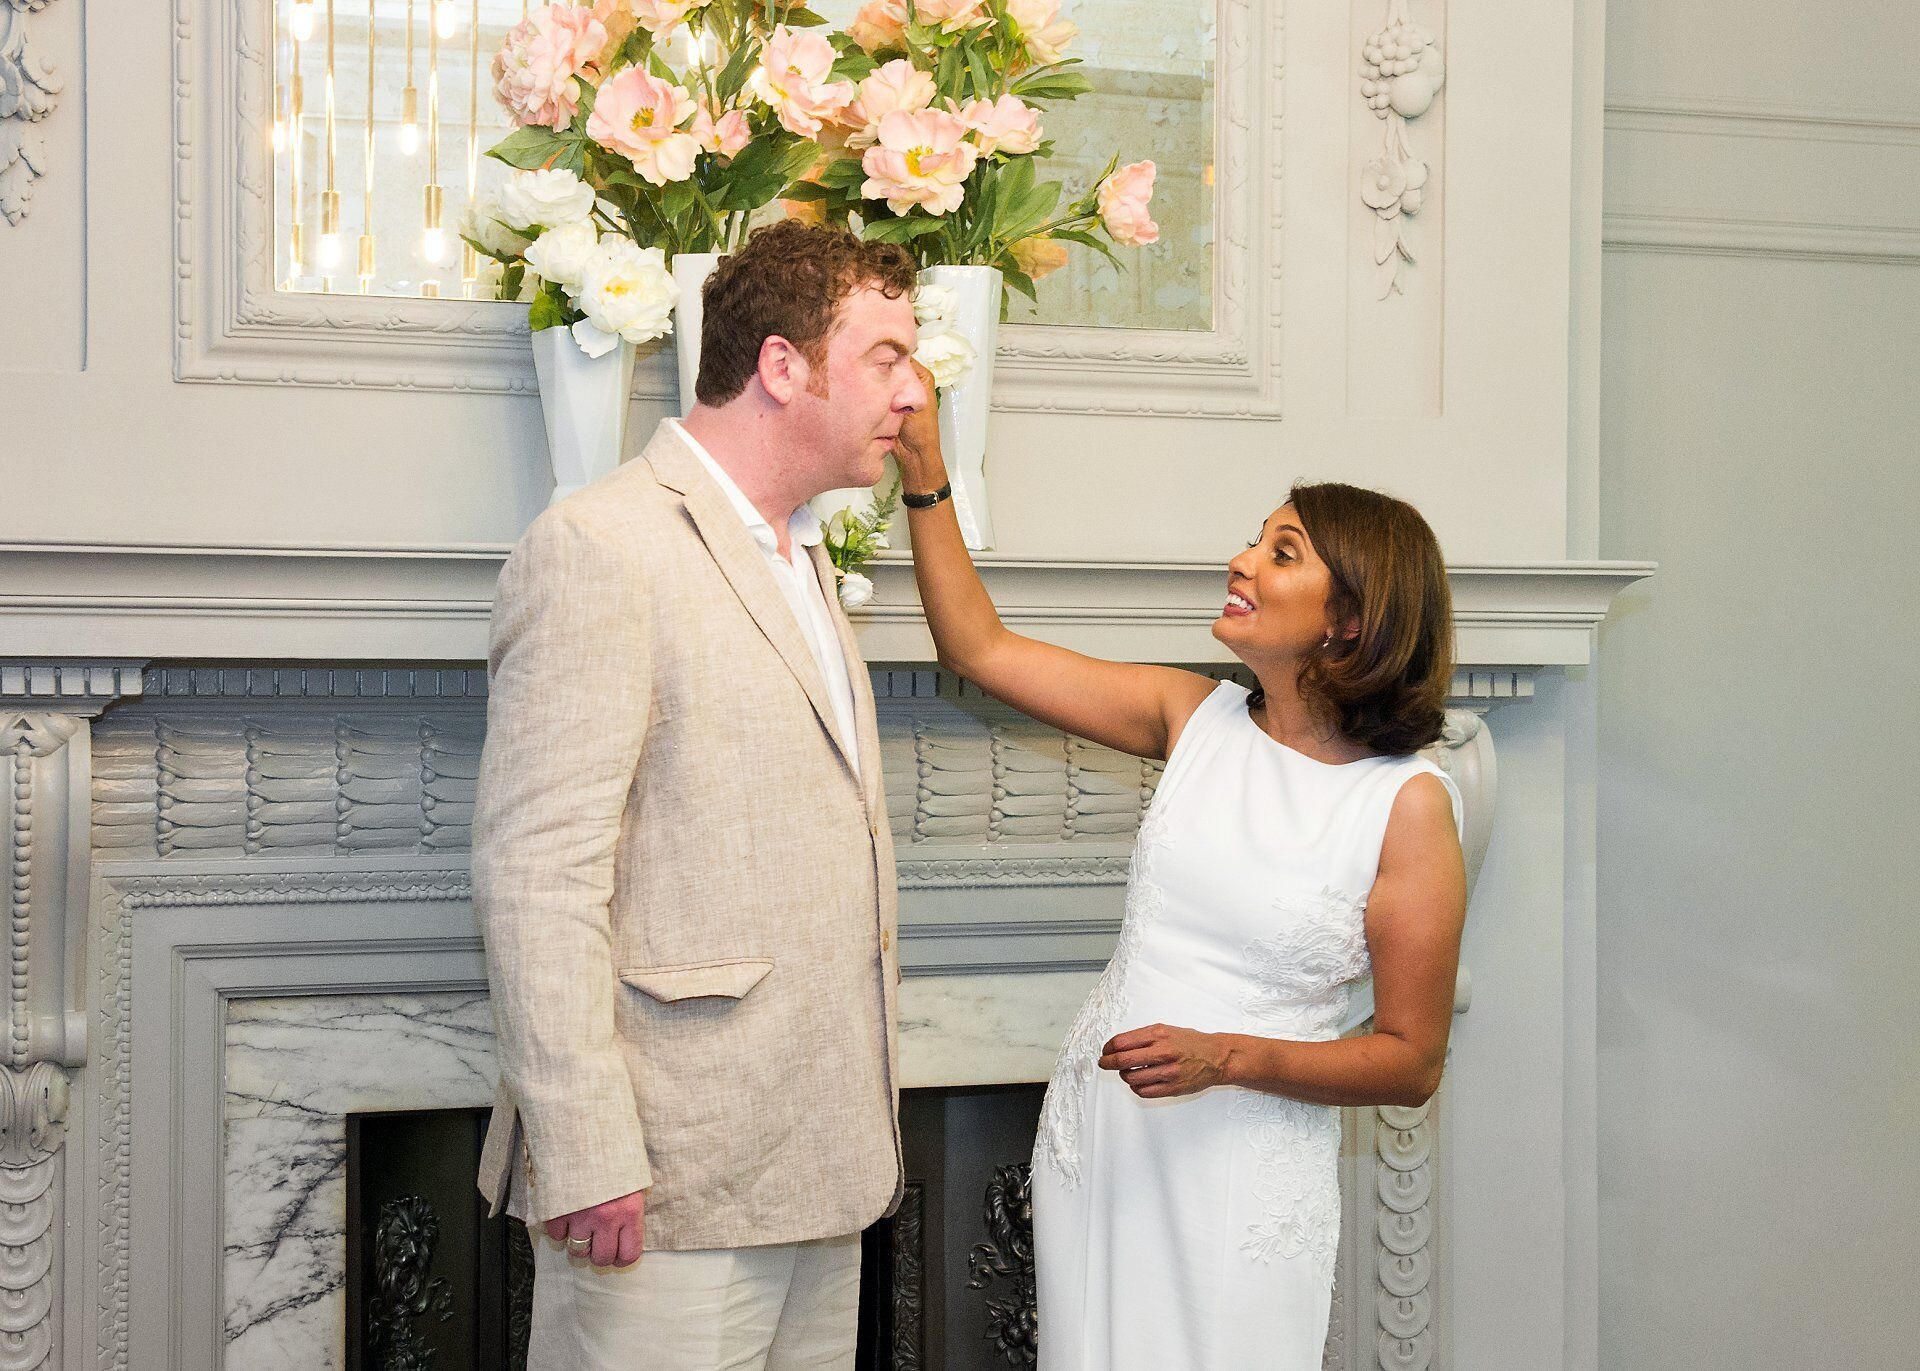 bride mops groom's brow during world cup quarter final wedding at old marylebone town hall